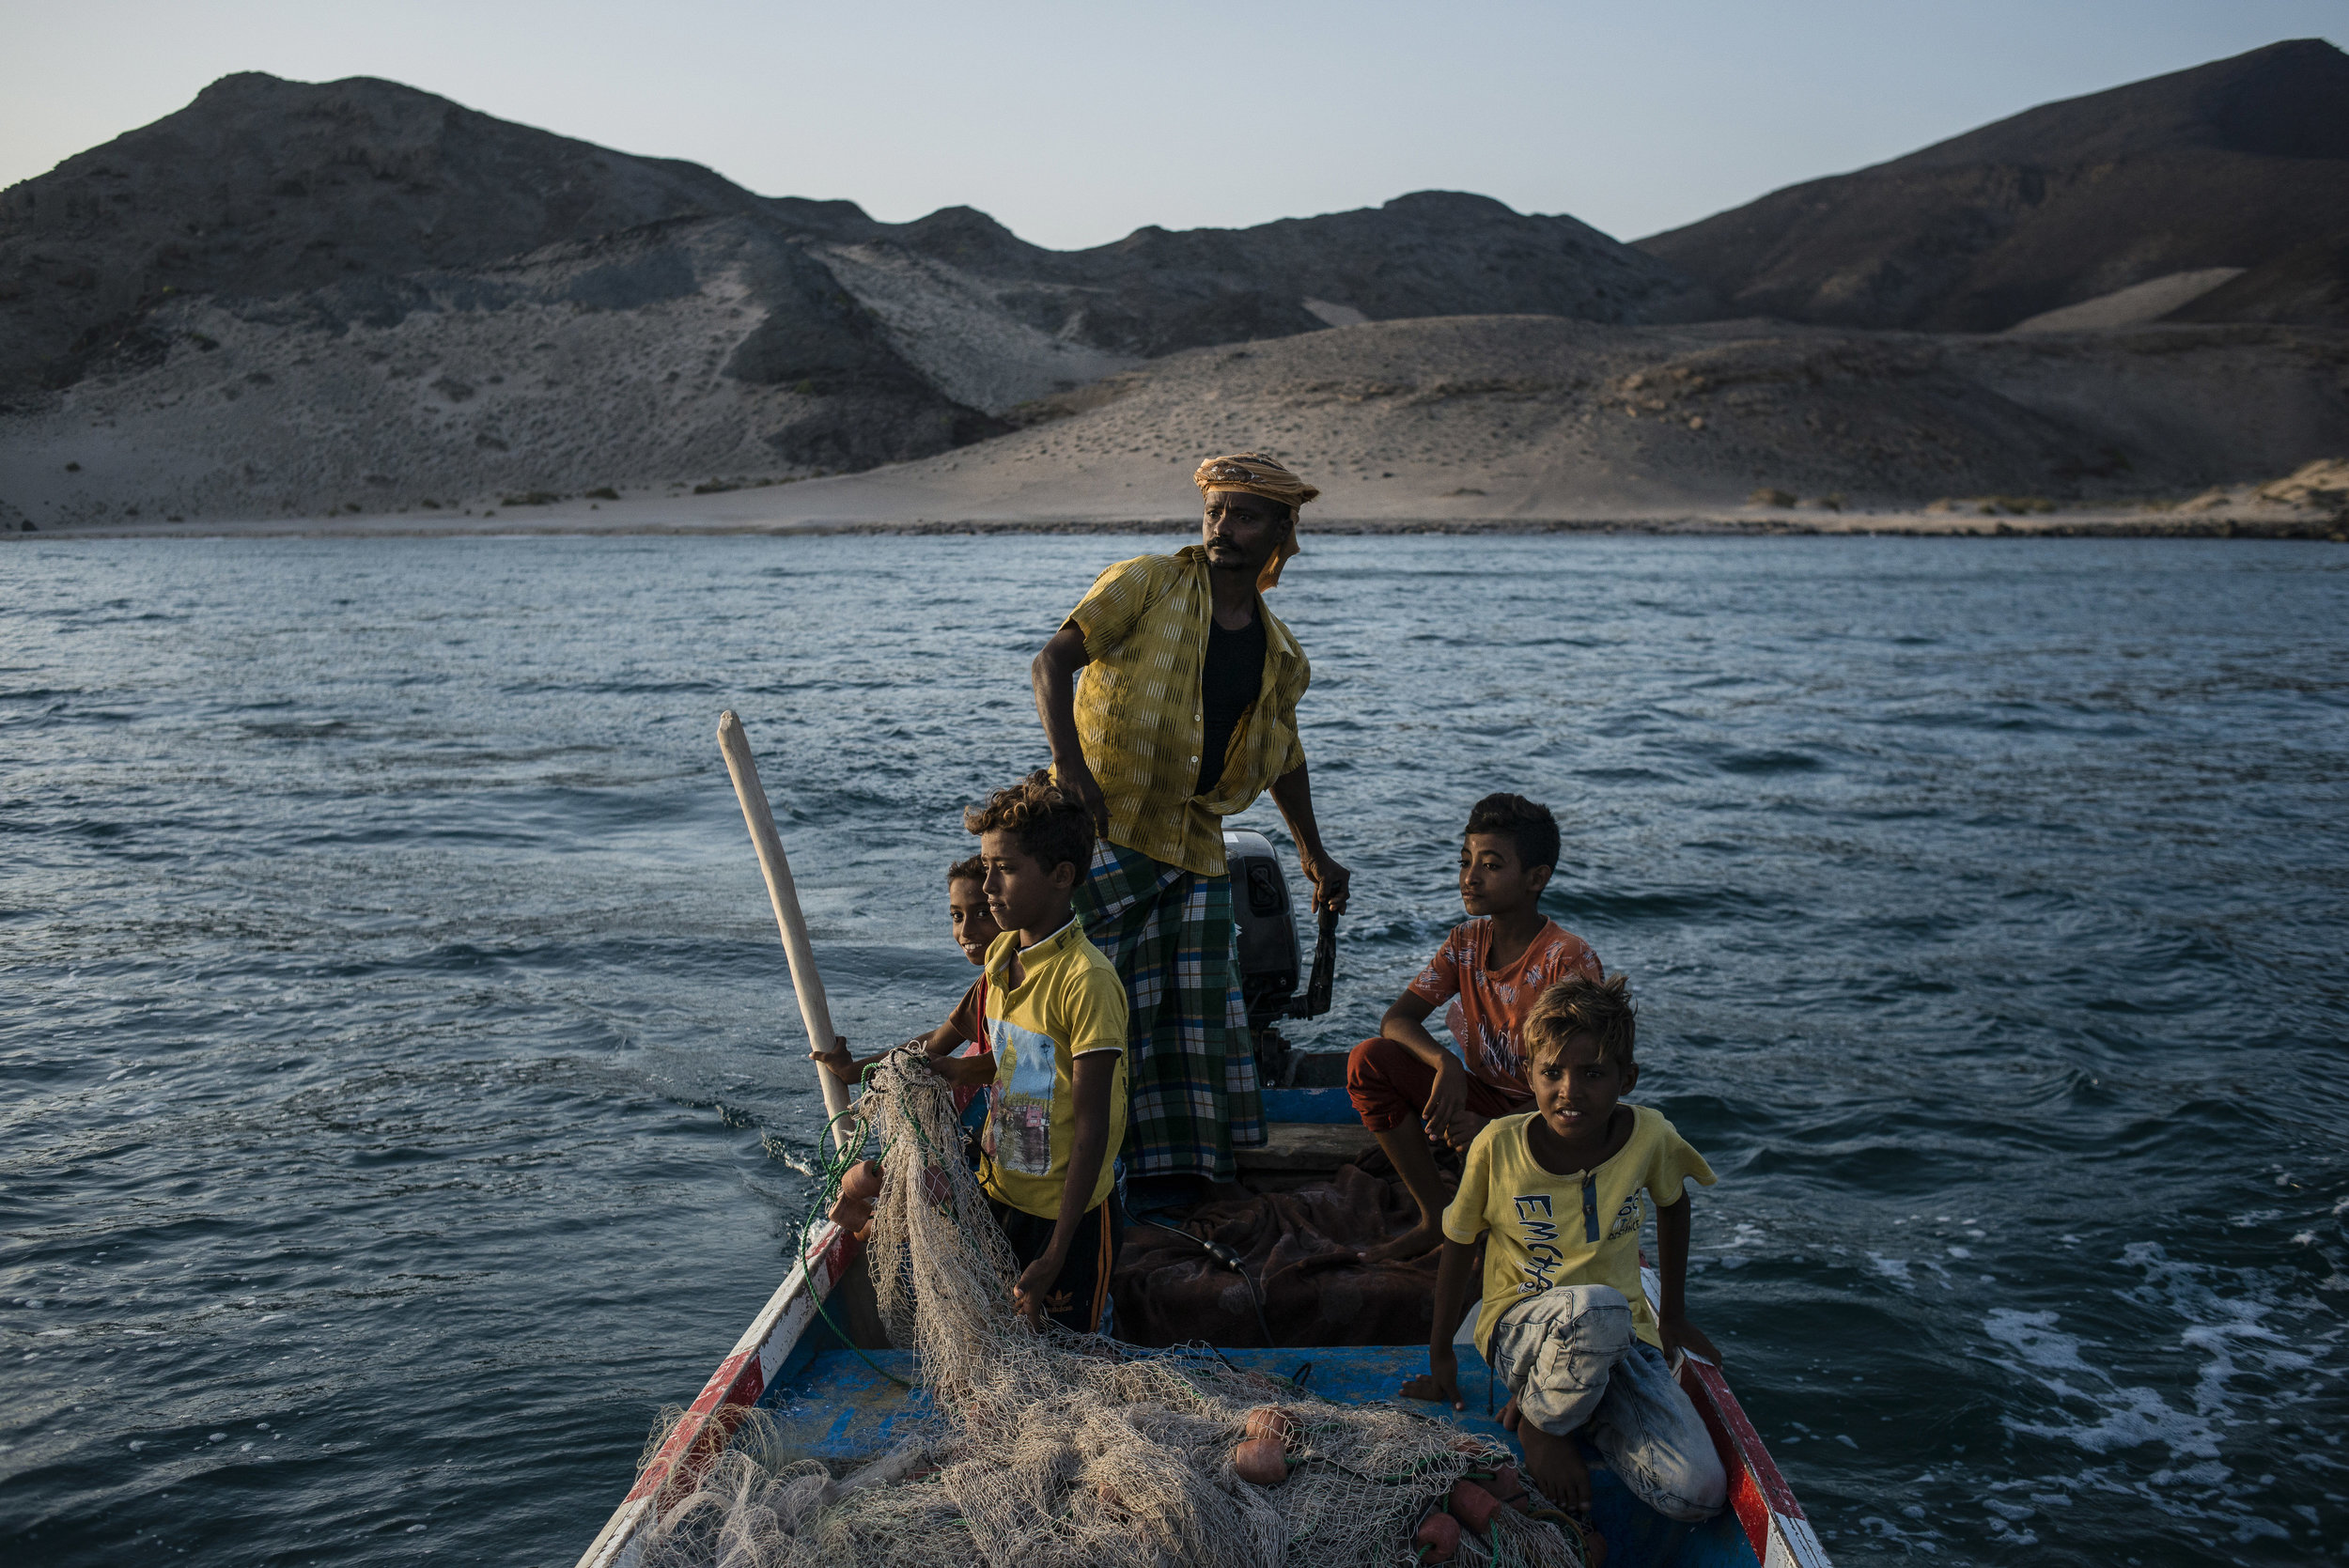 "ALEX KAY POTTER  www.alexkaypotter.com  |  @alexkpotter   Shafai (center) drives a boat near the shore in search of schools of fish to catch on May 9, 2018 in Fugum, Yemen. Shafai doesn't send his sons to school: He believes an education won't help them make a living. Instead, he teaches them how to fish. ""Our life and work is on the sea. I can teach my sons the trade, and they can provide for themselves. We're poor in work, but we're rich in life.""  From National Geographic:    As War Rages, Yemen's Fathers and Sons Face an Uncertain Future   ."